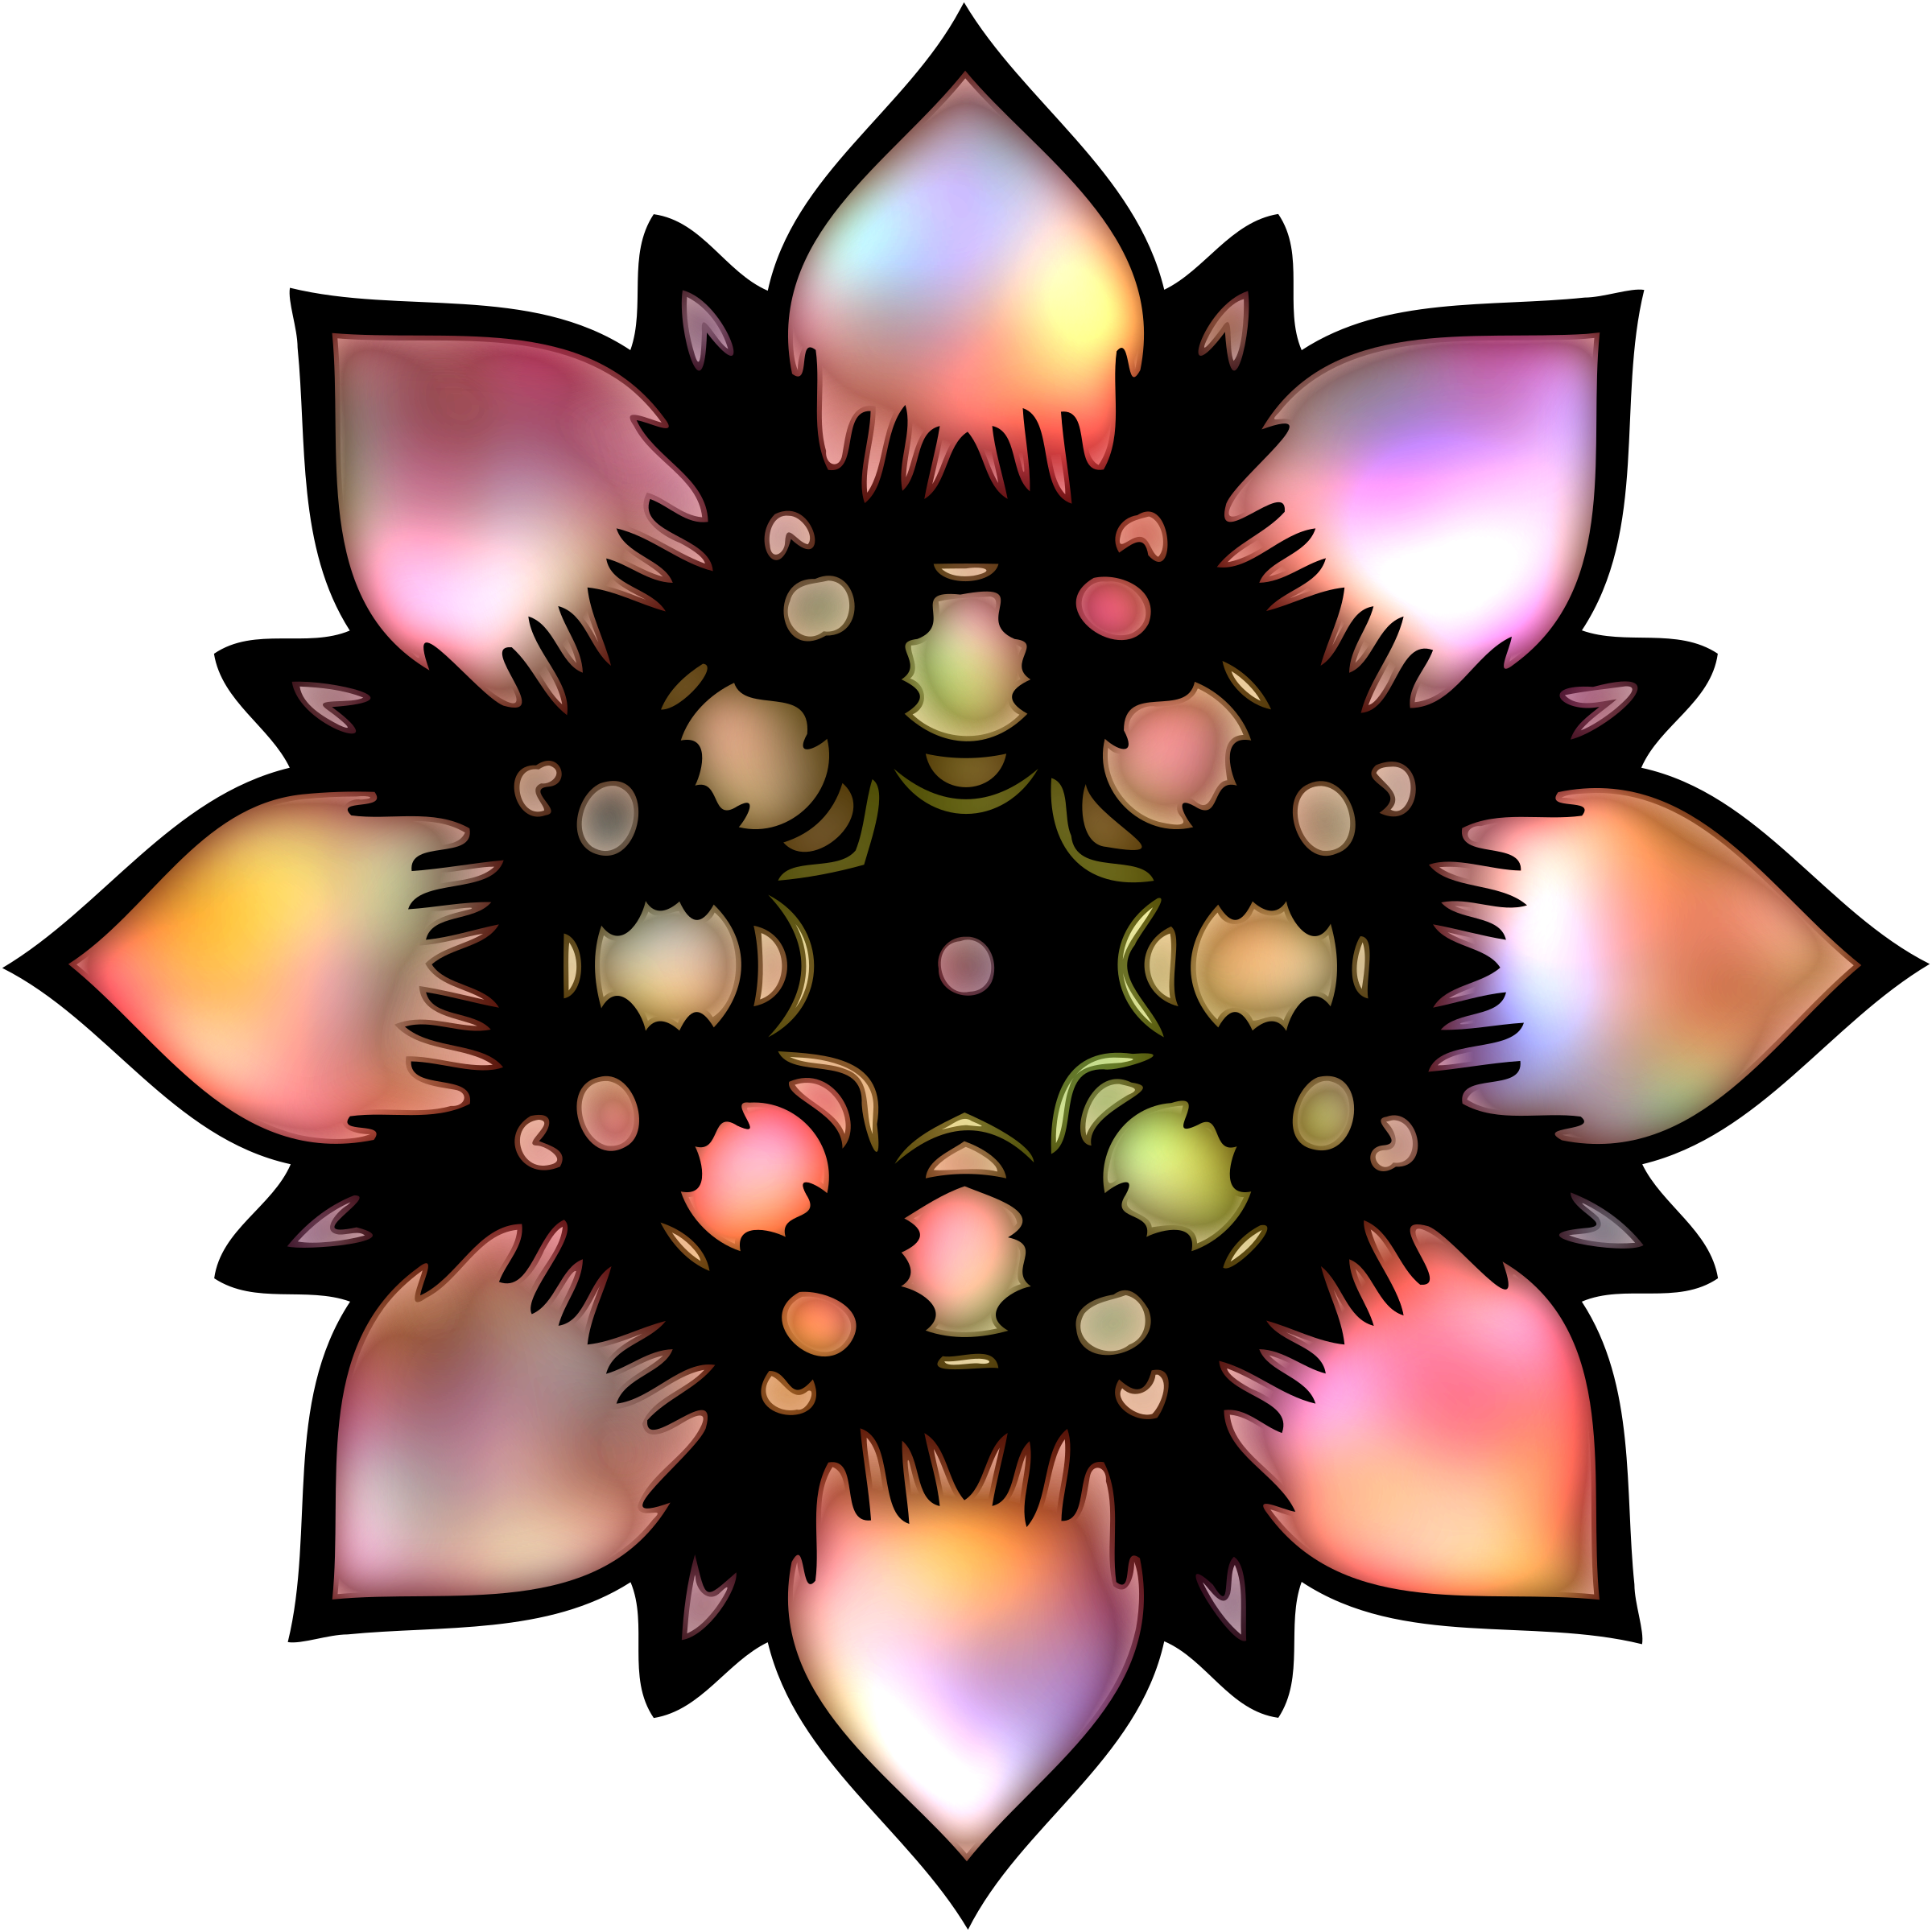 Abstract flower 4 by Firkin